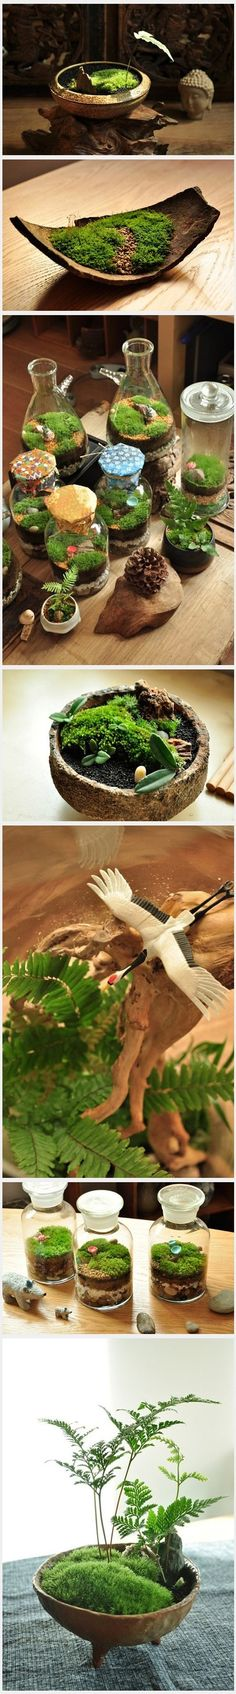 Moss gardens, for Kensie to make a fairy garden....so cute.